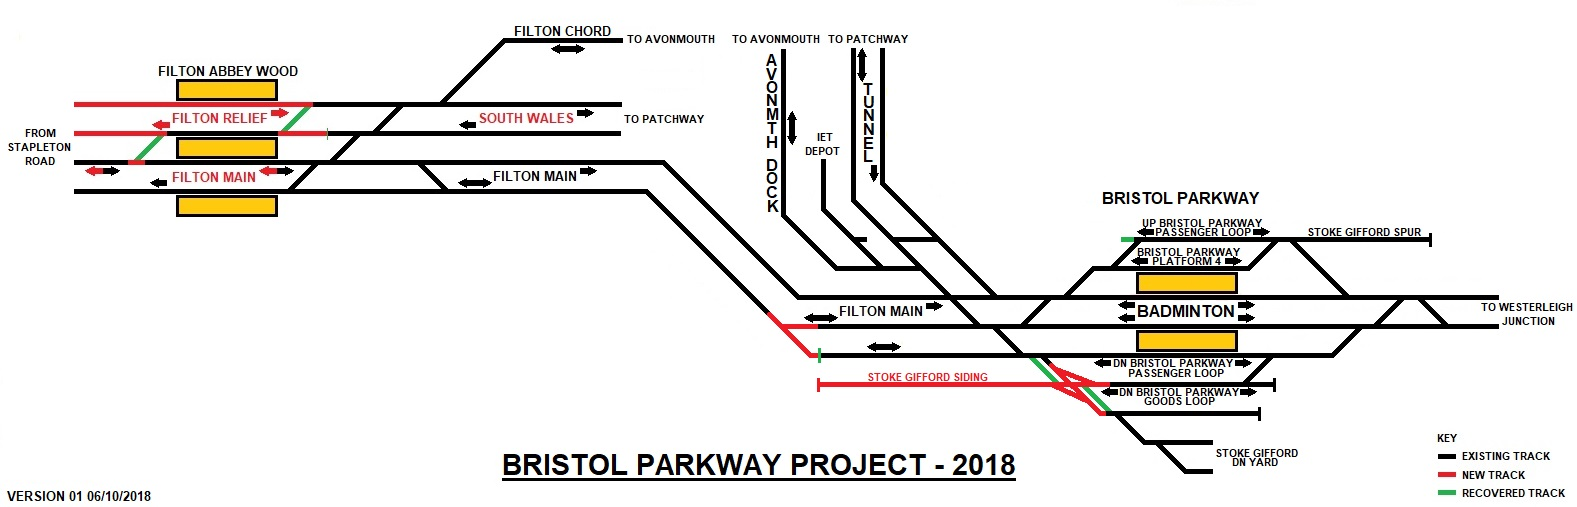 a8e6e4318 Print Page - Four track for Filton Bank - ongoing discussion